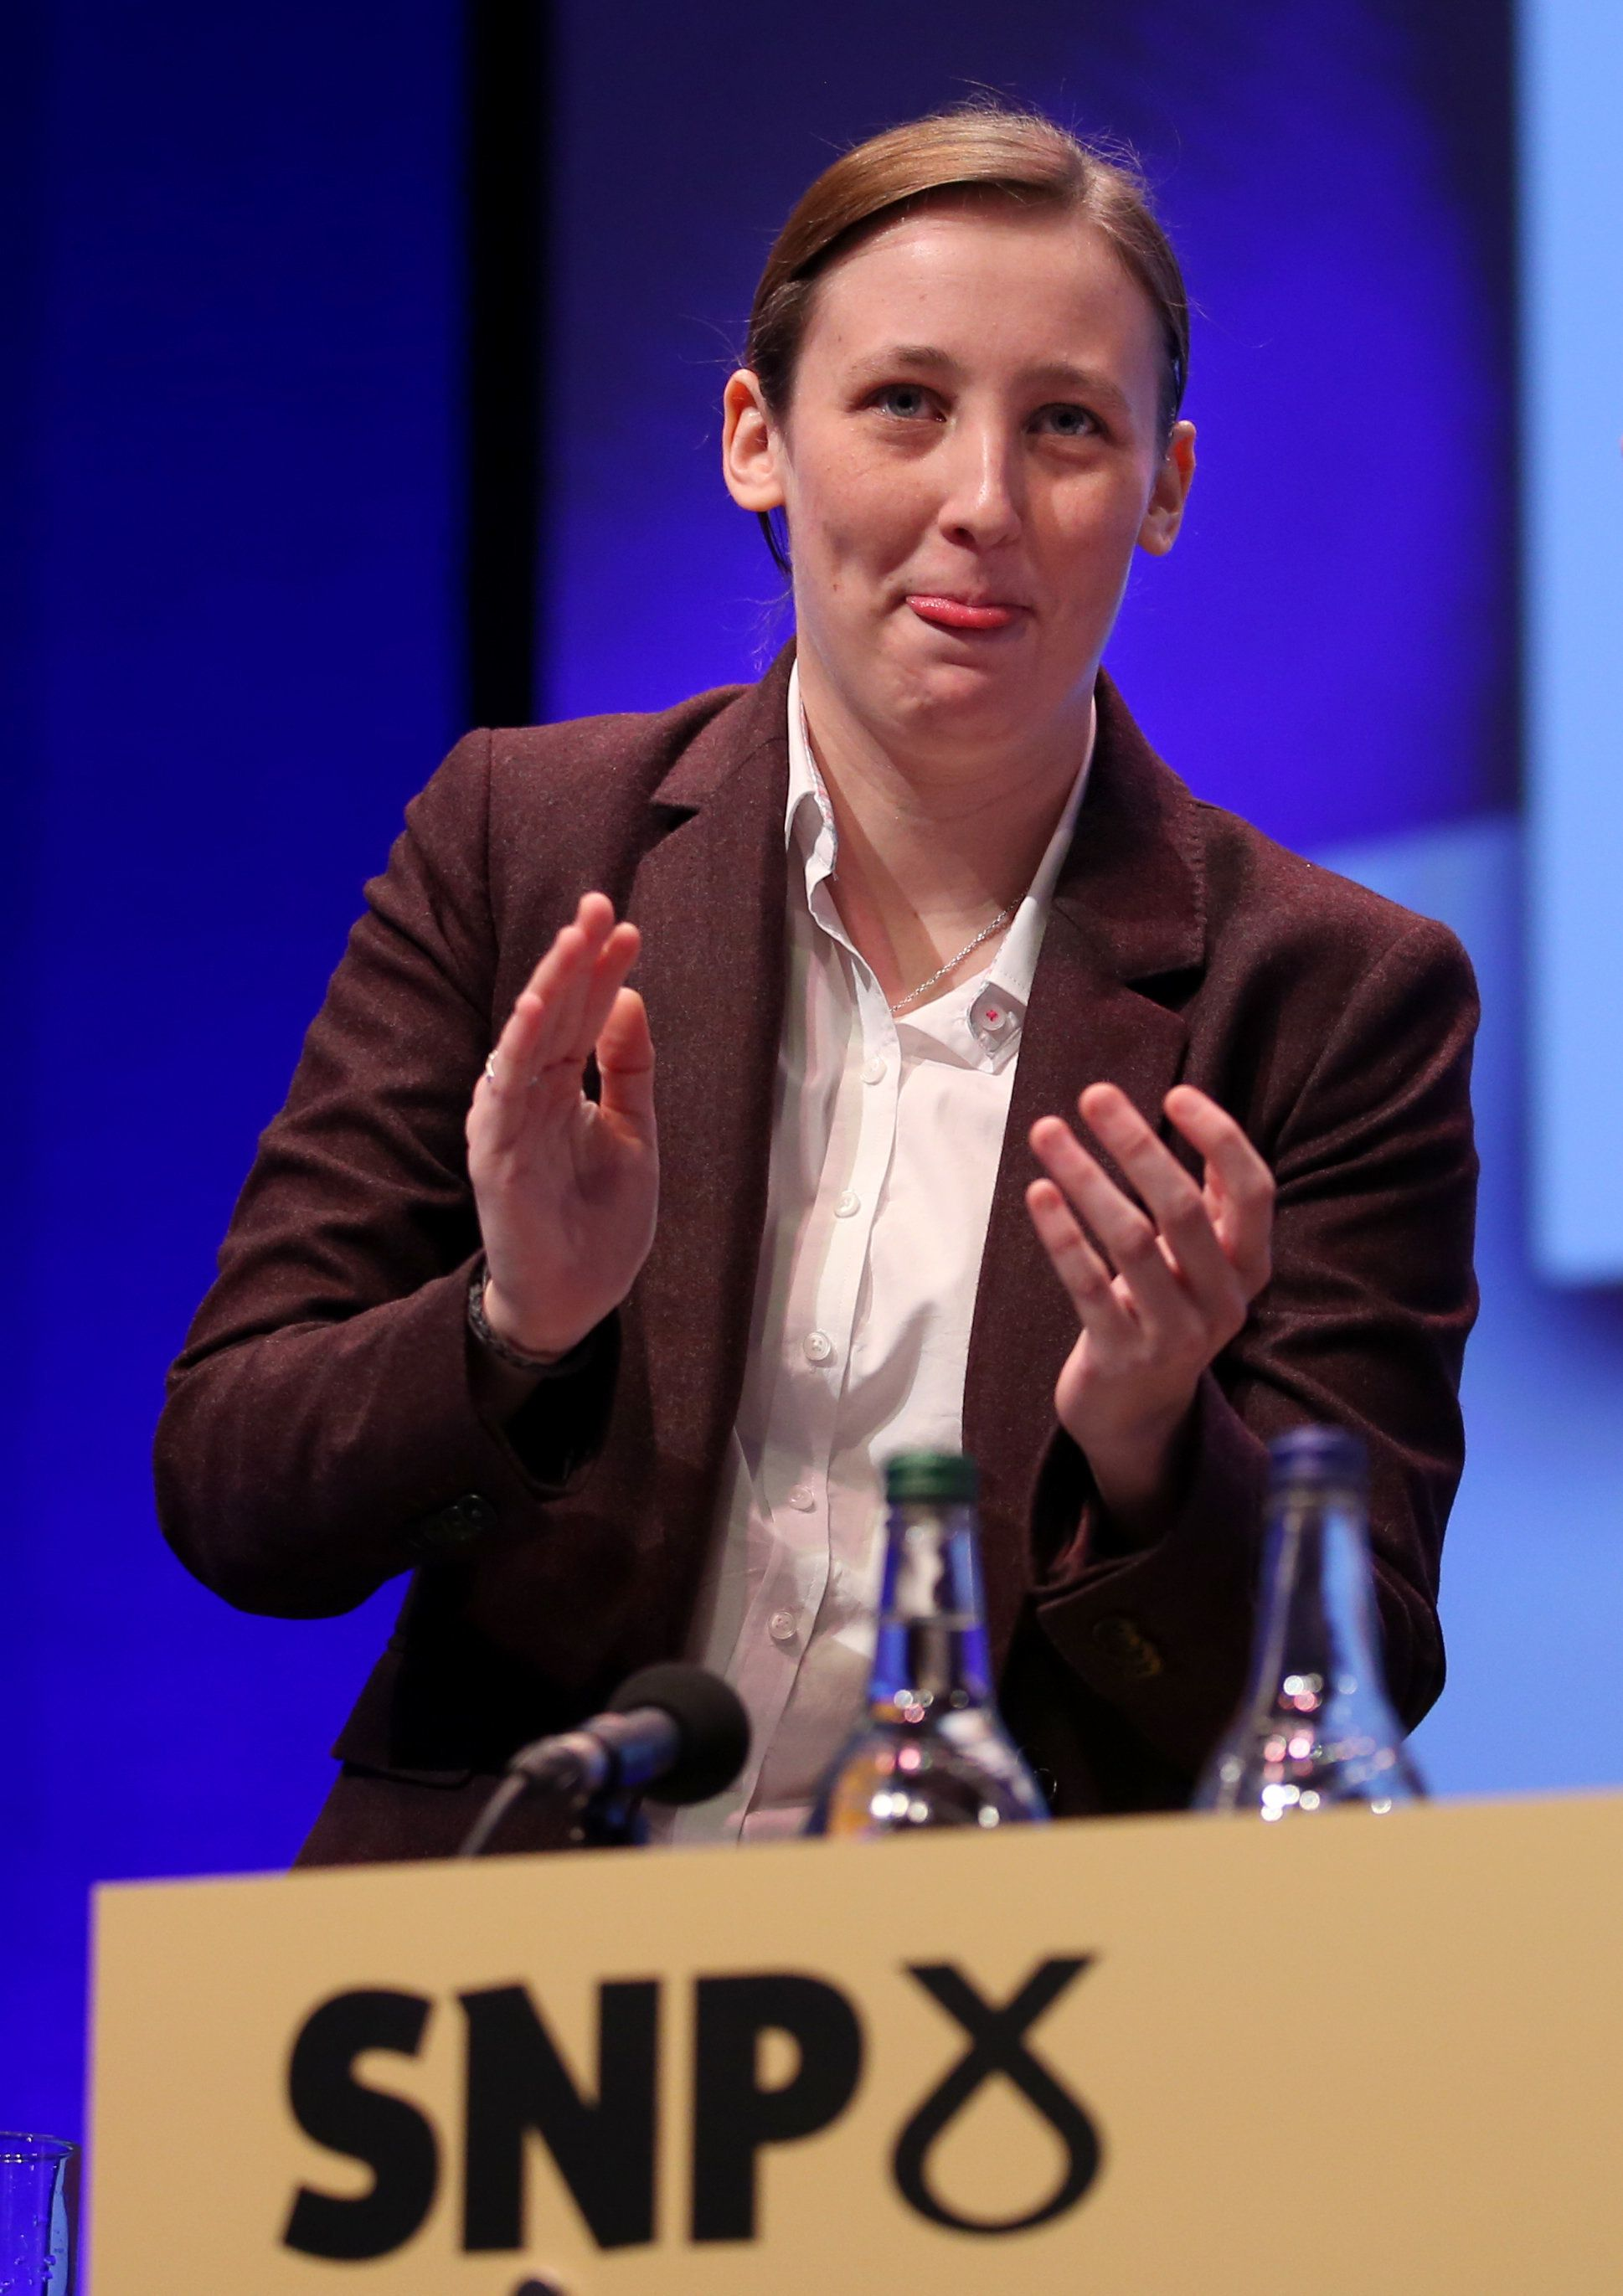 Jeremy Corbyn Has 'Sold His Soul' Over Issue Of Scottish Independence, Says Mhairi